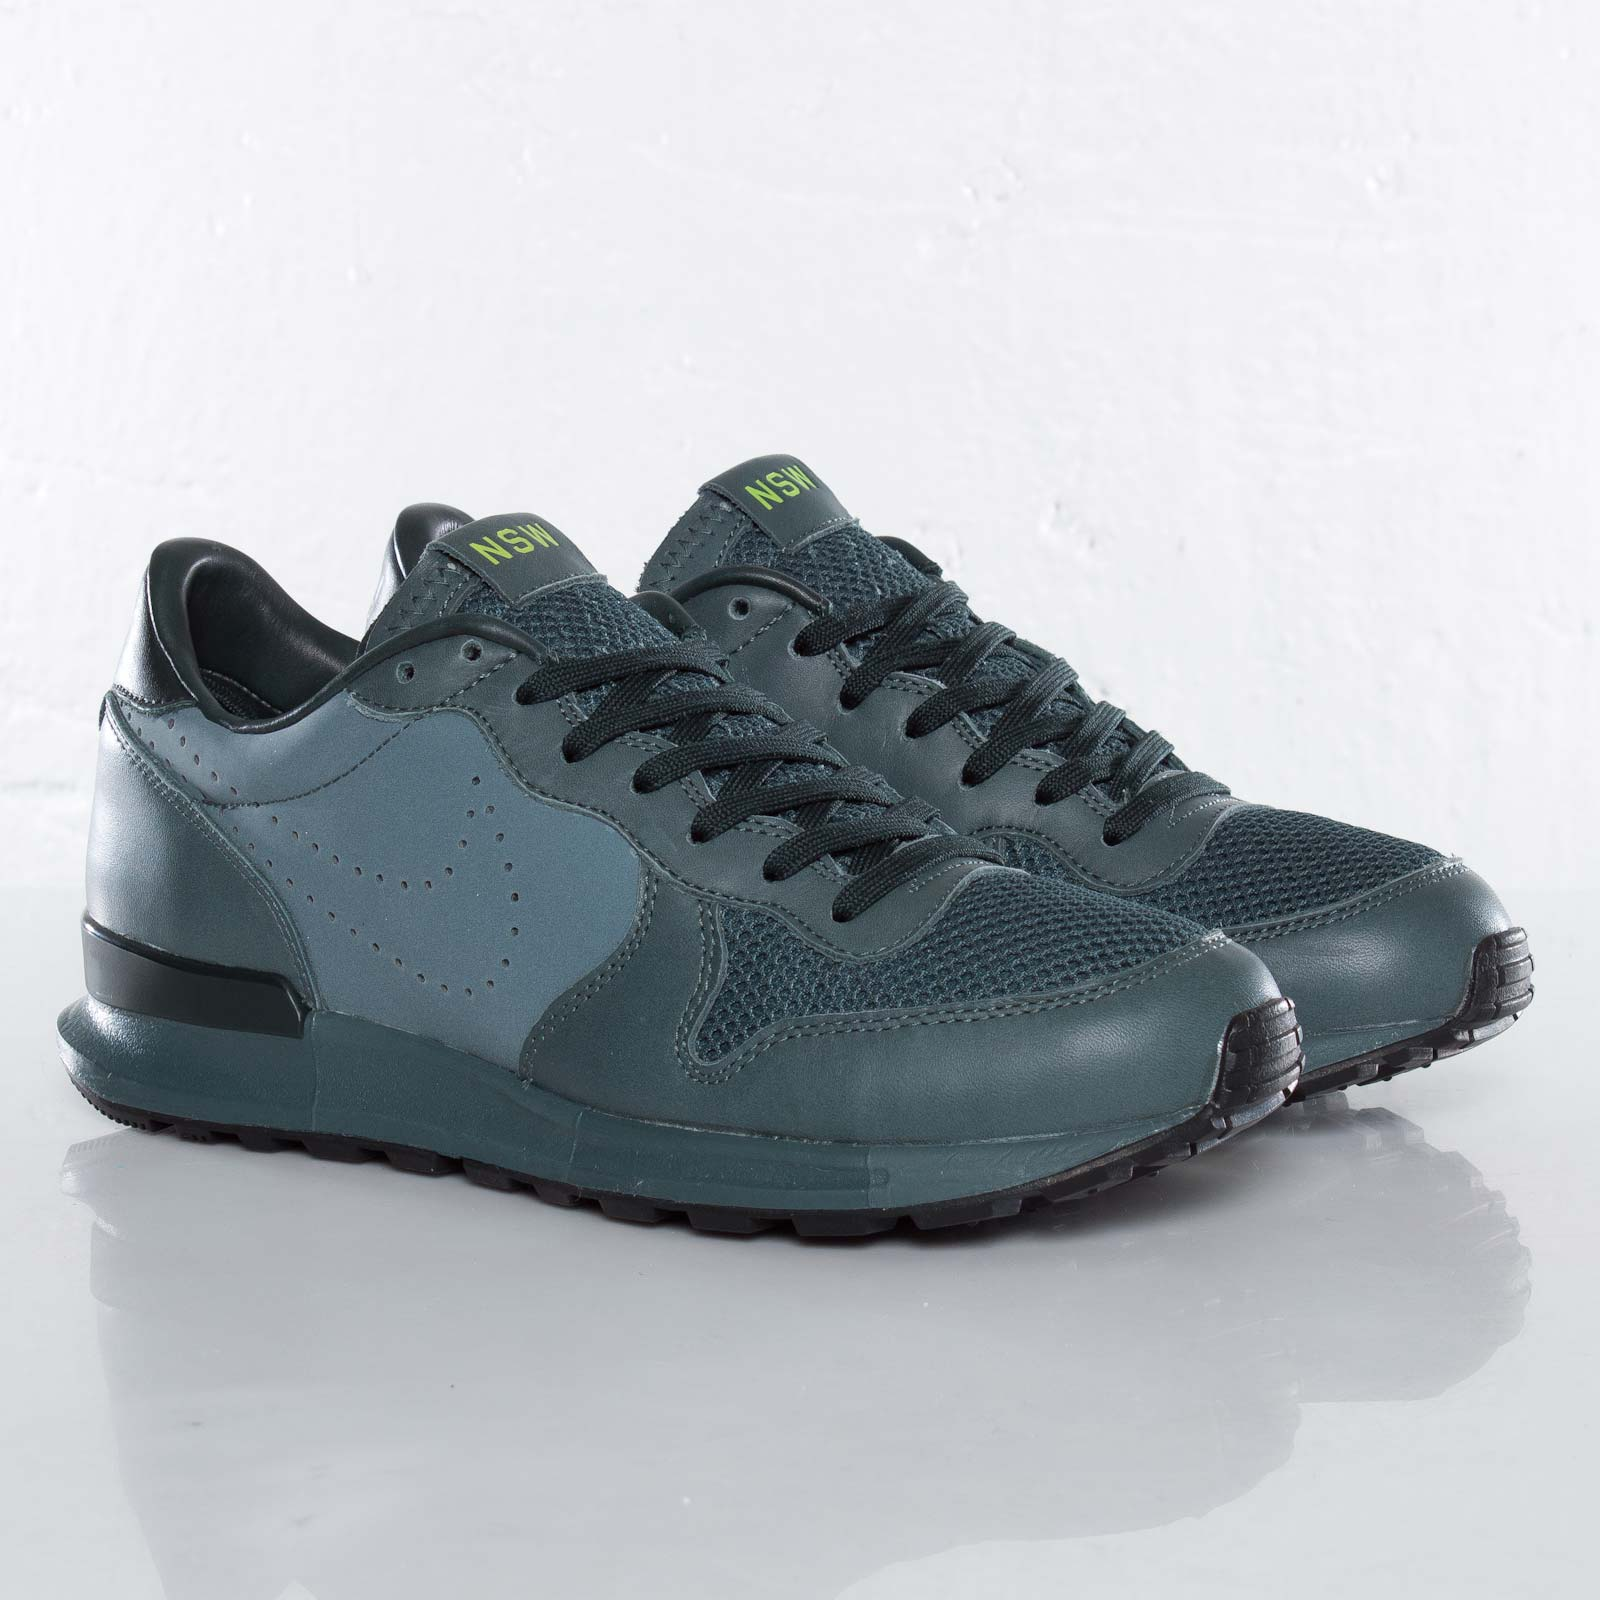 best service 60790 2dc25 Nike Air Solstice Premium NSW NRG